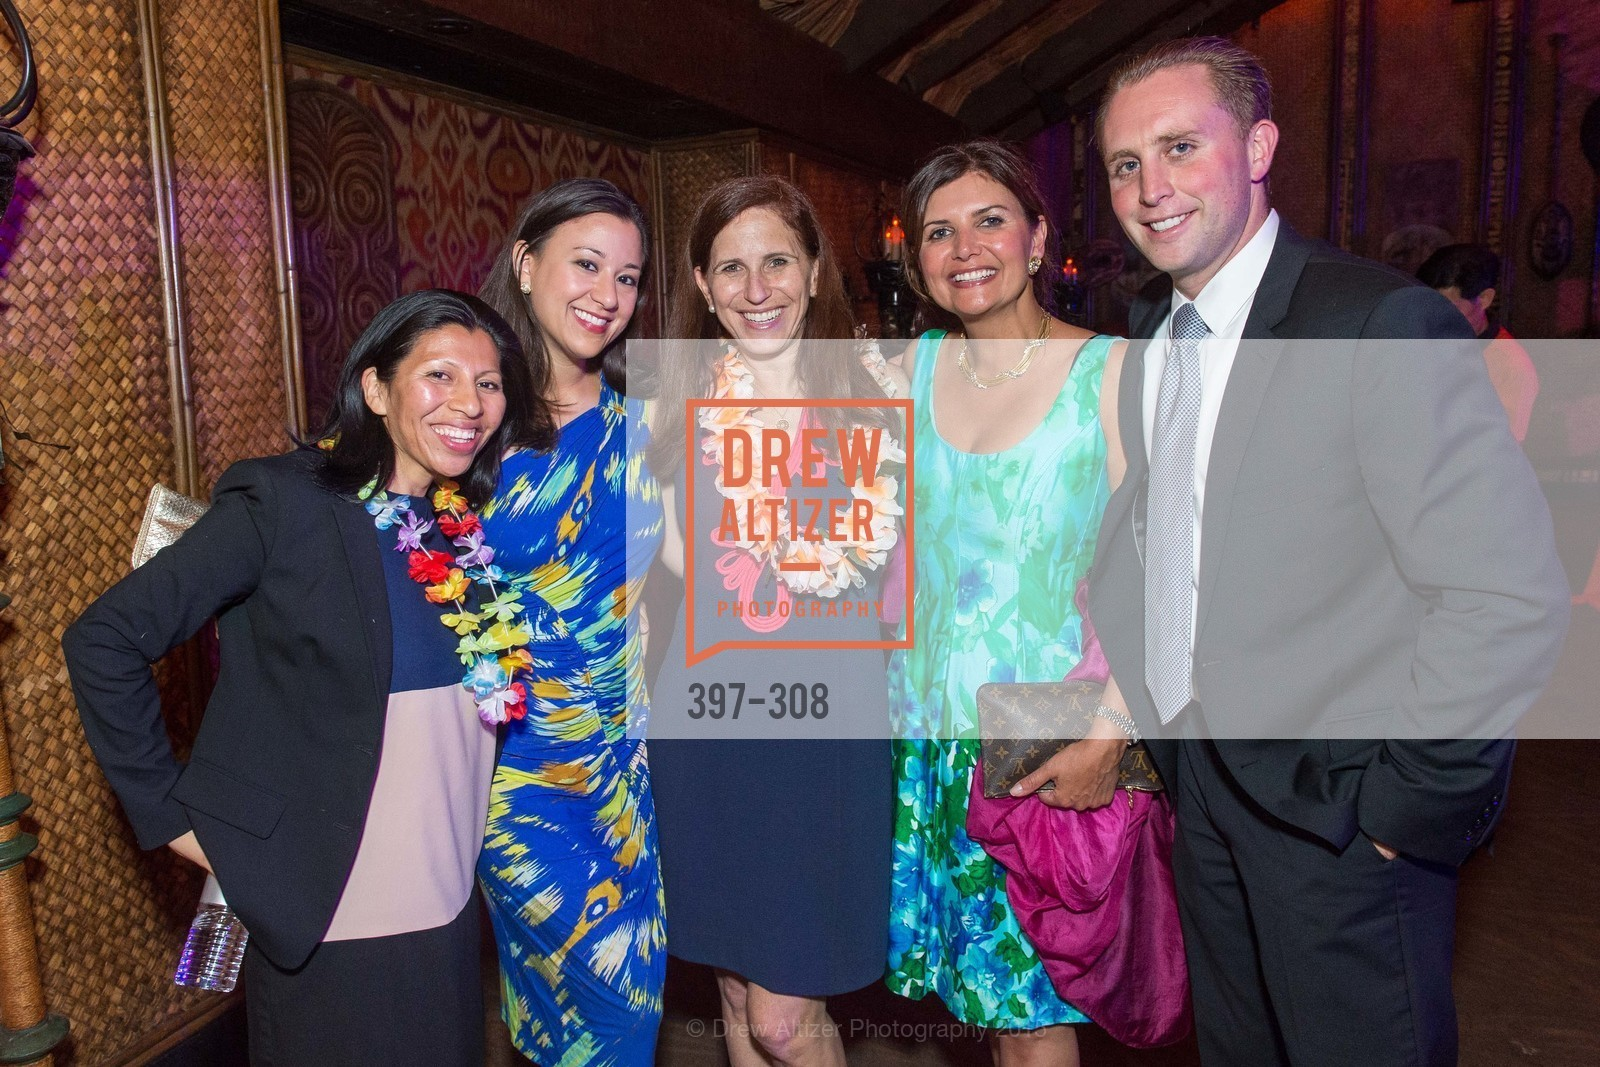 Ana Macardo, Melissa Farrar, Tonga Room & Hurricane Bar Celebrates 70 Years of Tiki Glory, Fairmont, September 23rd, 2015,Drew Altizer, Drew Altizer Photography, full-service agency, private events, San Francisco photographer, photographer california